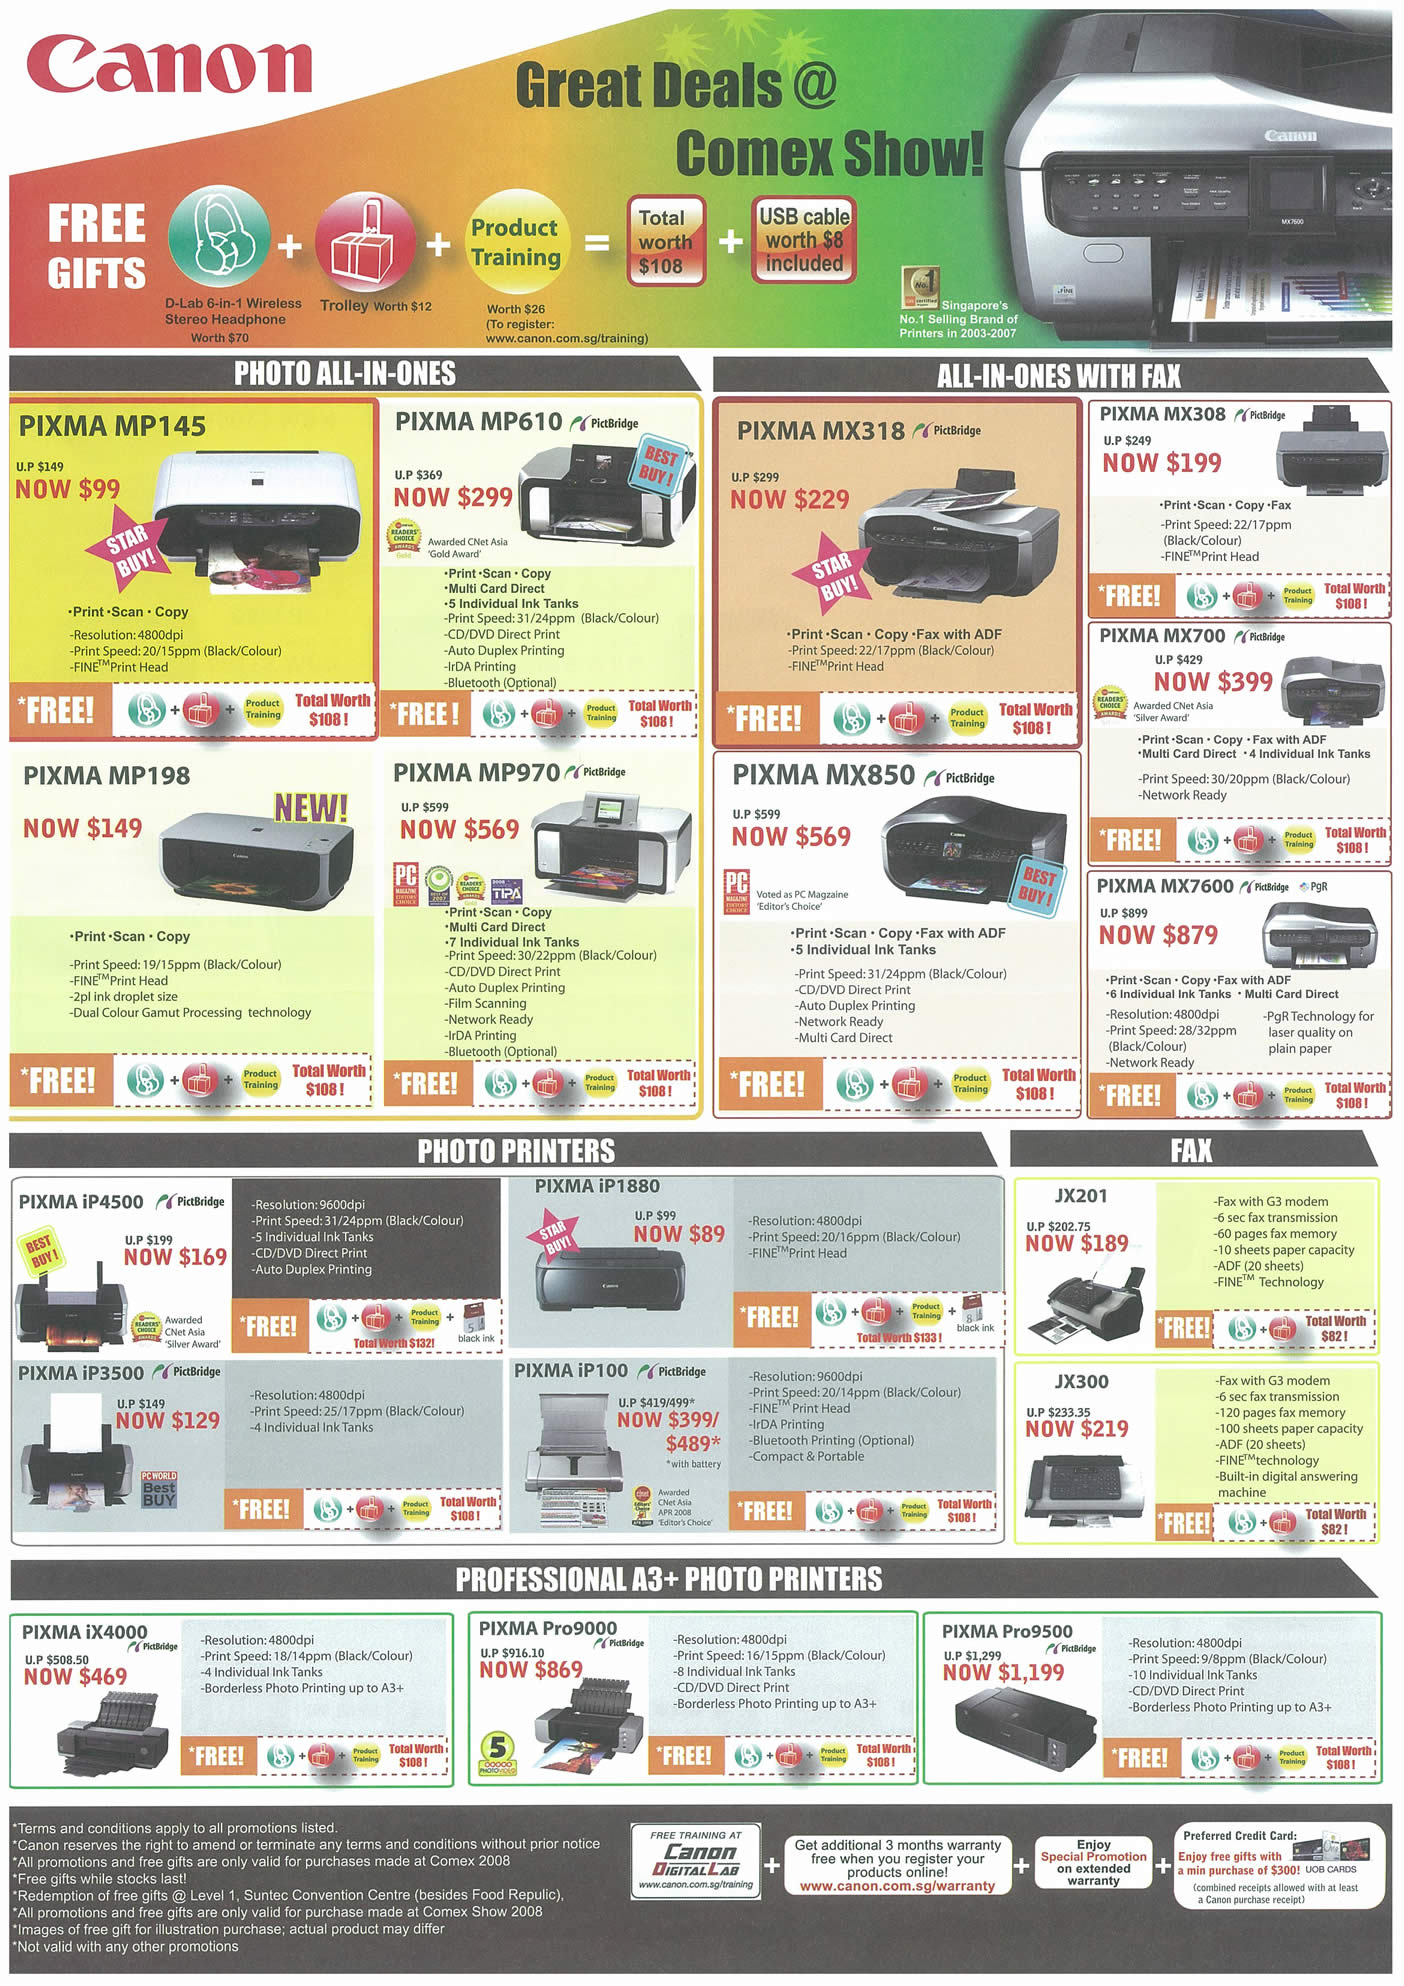 Comex 2008 price list image brochure of Canon Printers Page 1